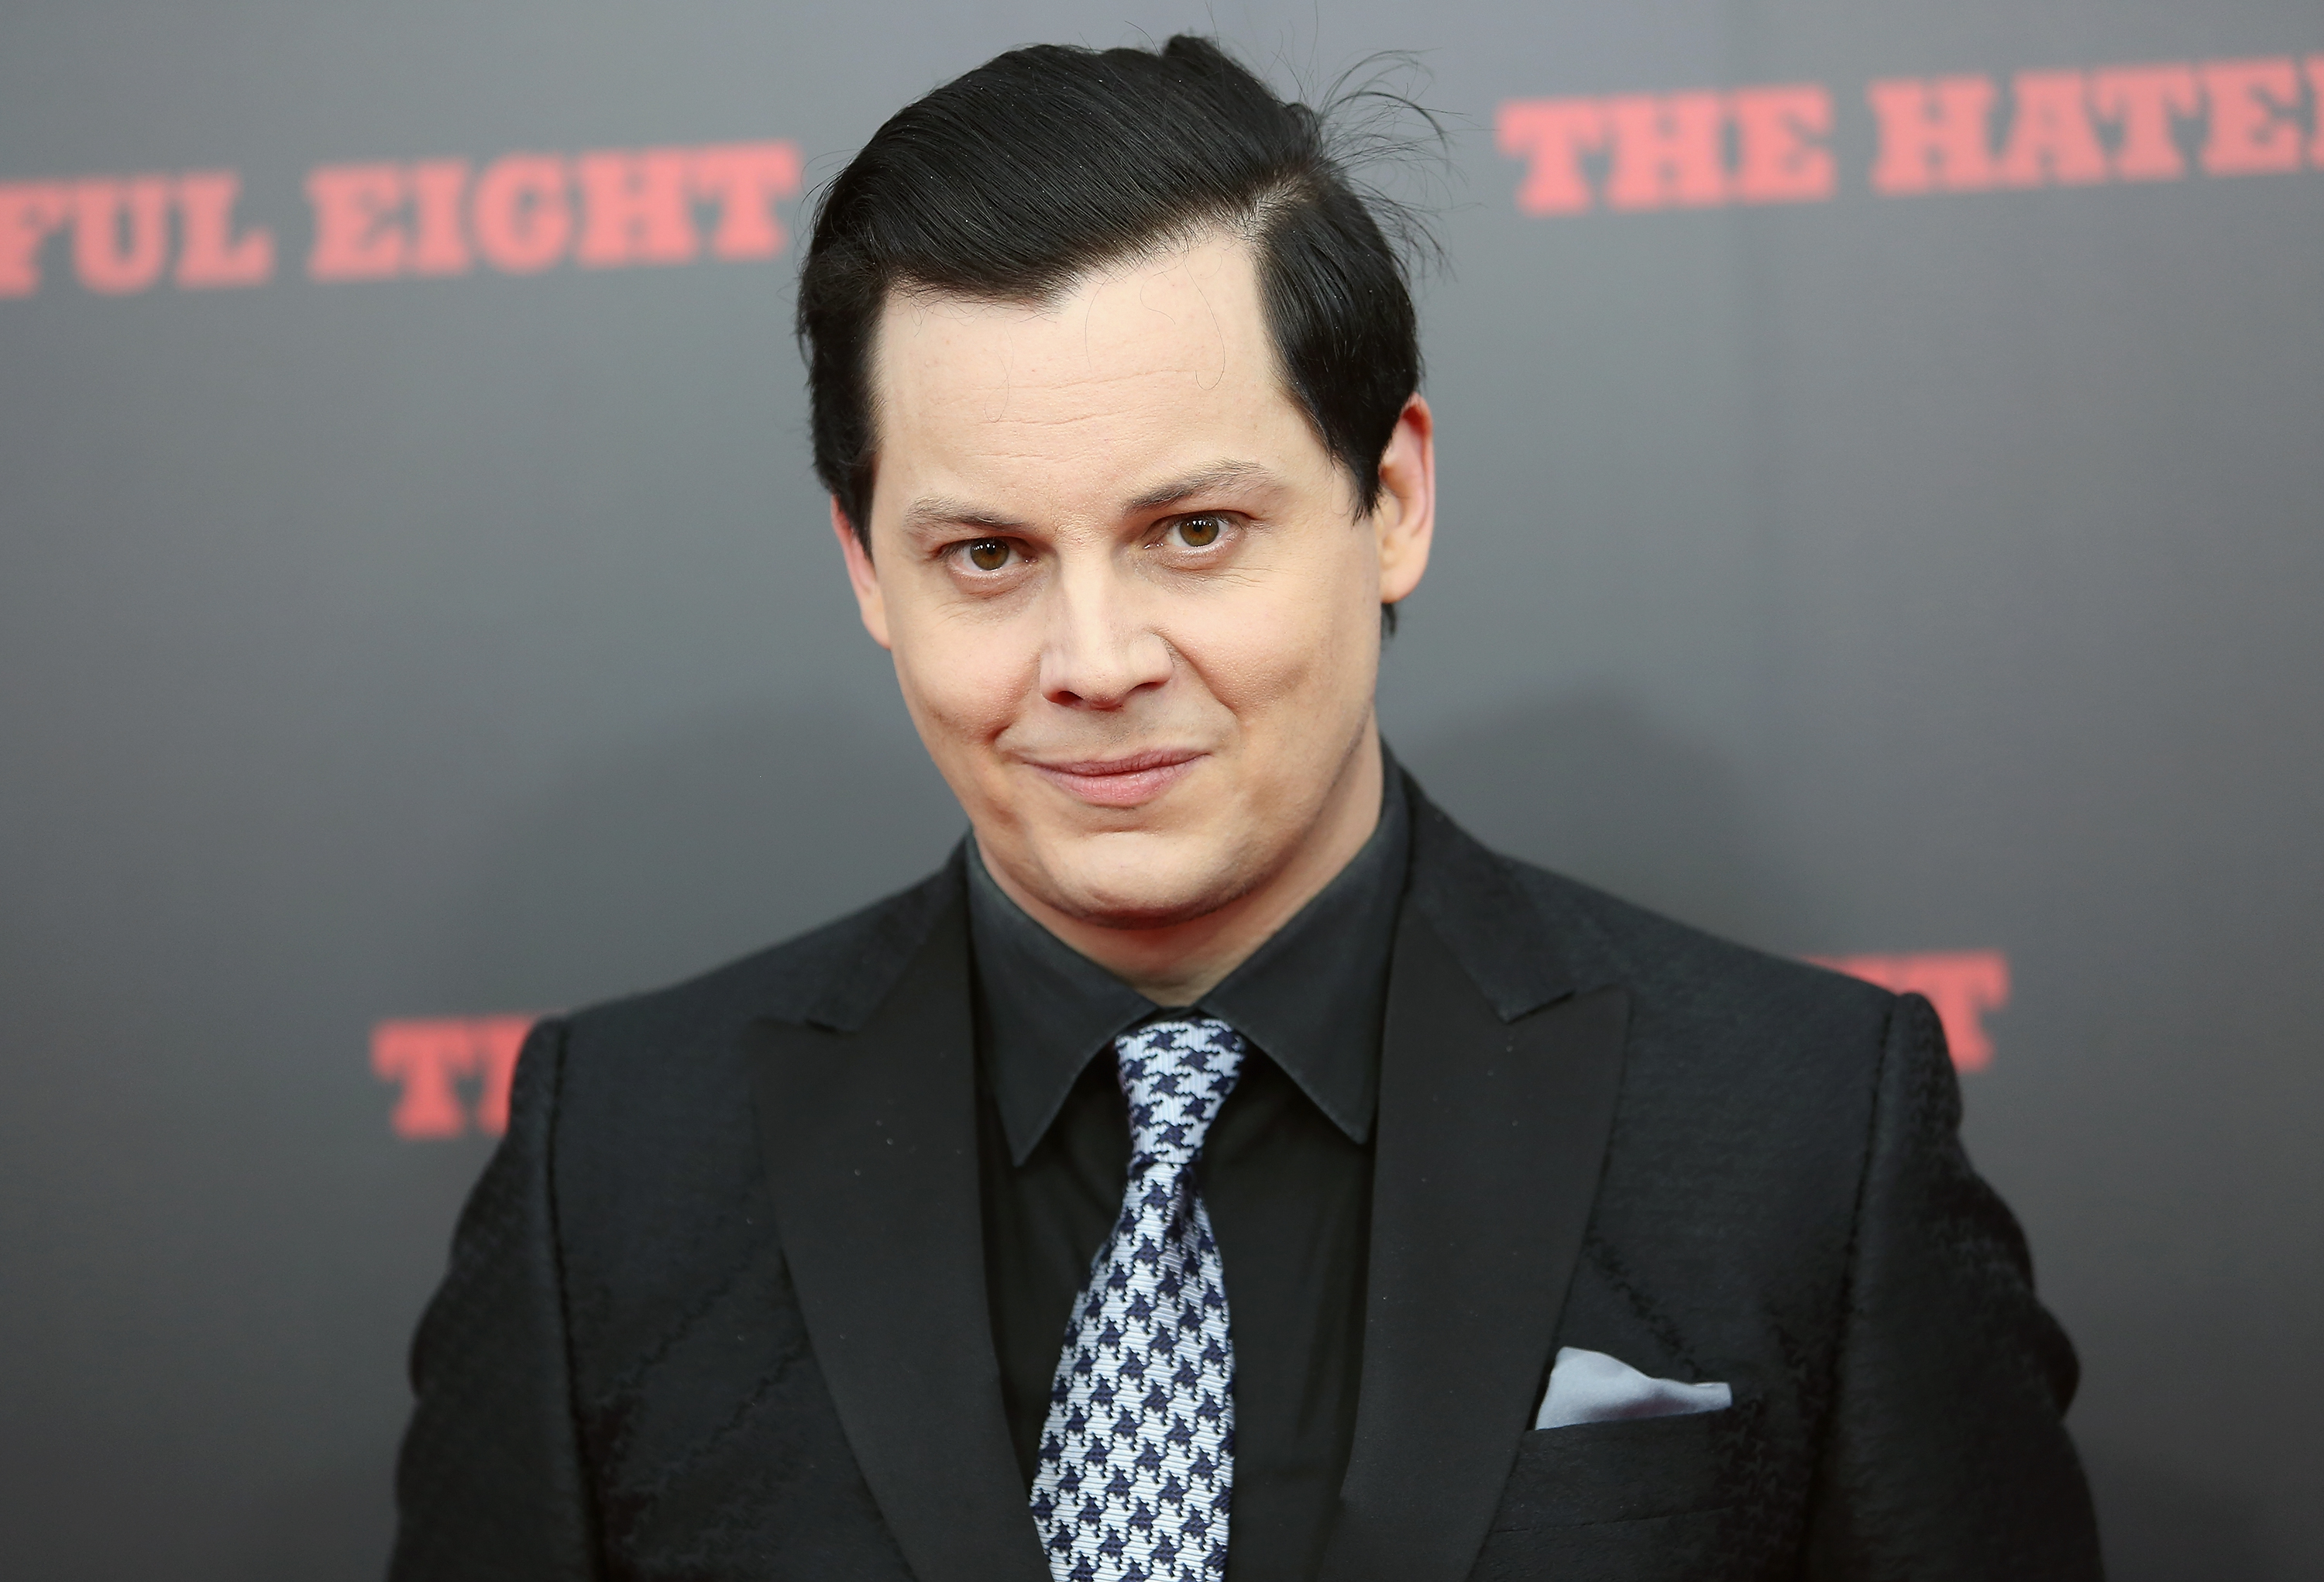 NEW YORK, NY - DECEMBER 14:  Musician Jack White attends the The New York Premiere Of  The Hateful Eight  on December 14, 2015 in New York City.  (Photo by Monica Schipper/FilmMagic)